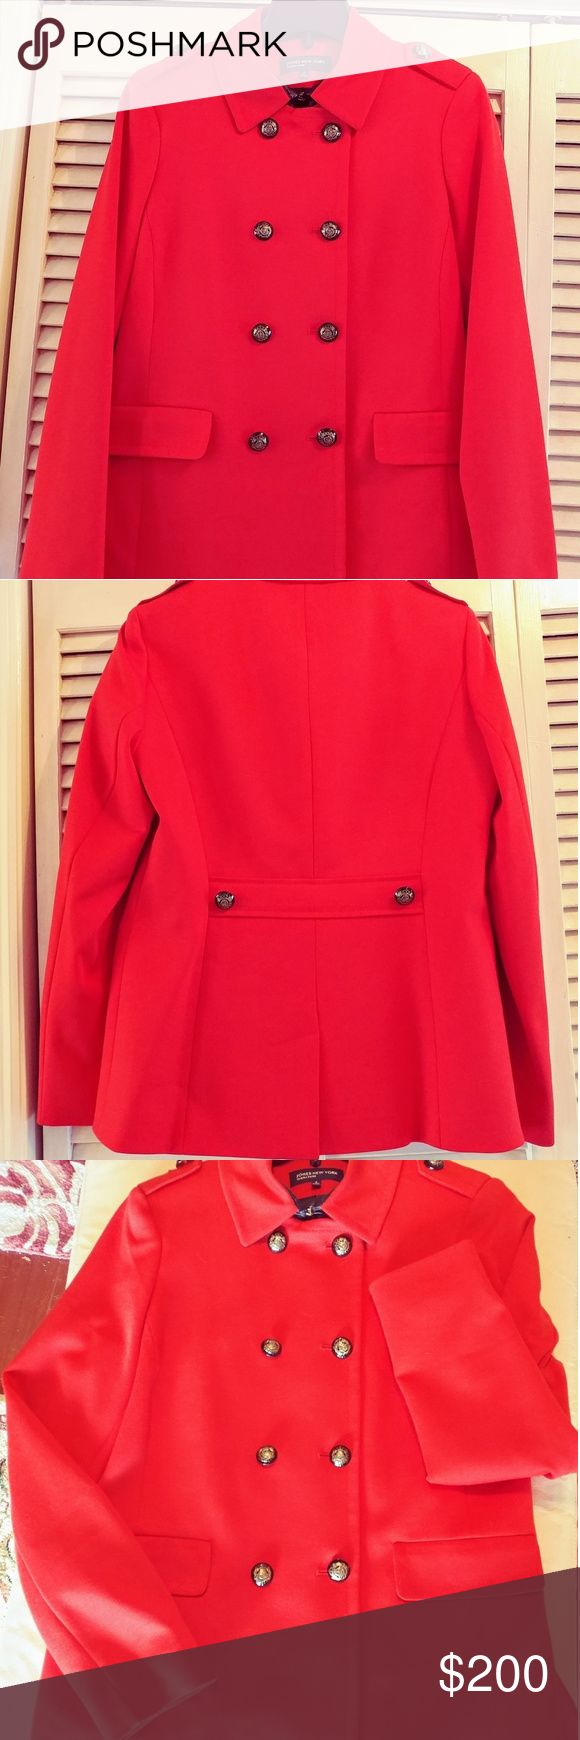 Jones New York Signature, Red, Pea Coat, Small New, Never Worn, red, double breasted, classic  pea coat from Jones New York Signature Collection line. Faux black leather under collar with gold clasp closure. Belted back, kick pleat, two front faux pockets, faux buttoned shoulder epaulets, fully lined. Size Small. This is not a heavy coat, Fall/early Winter & Spring wear. Purchased at Jones New York but was transferred South before the winter. Jones New York Jackets & Coats Pea Coats